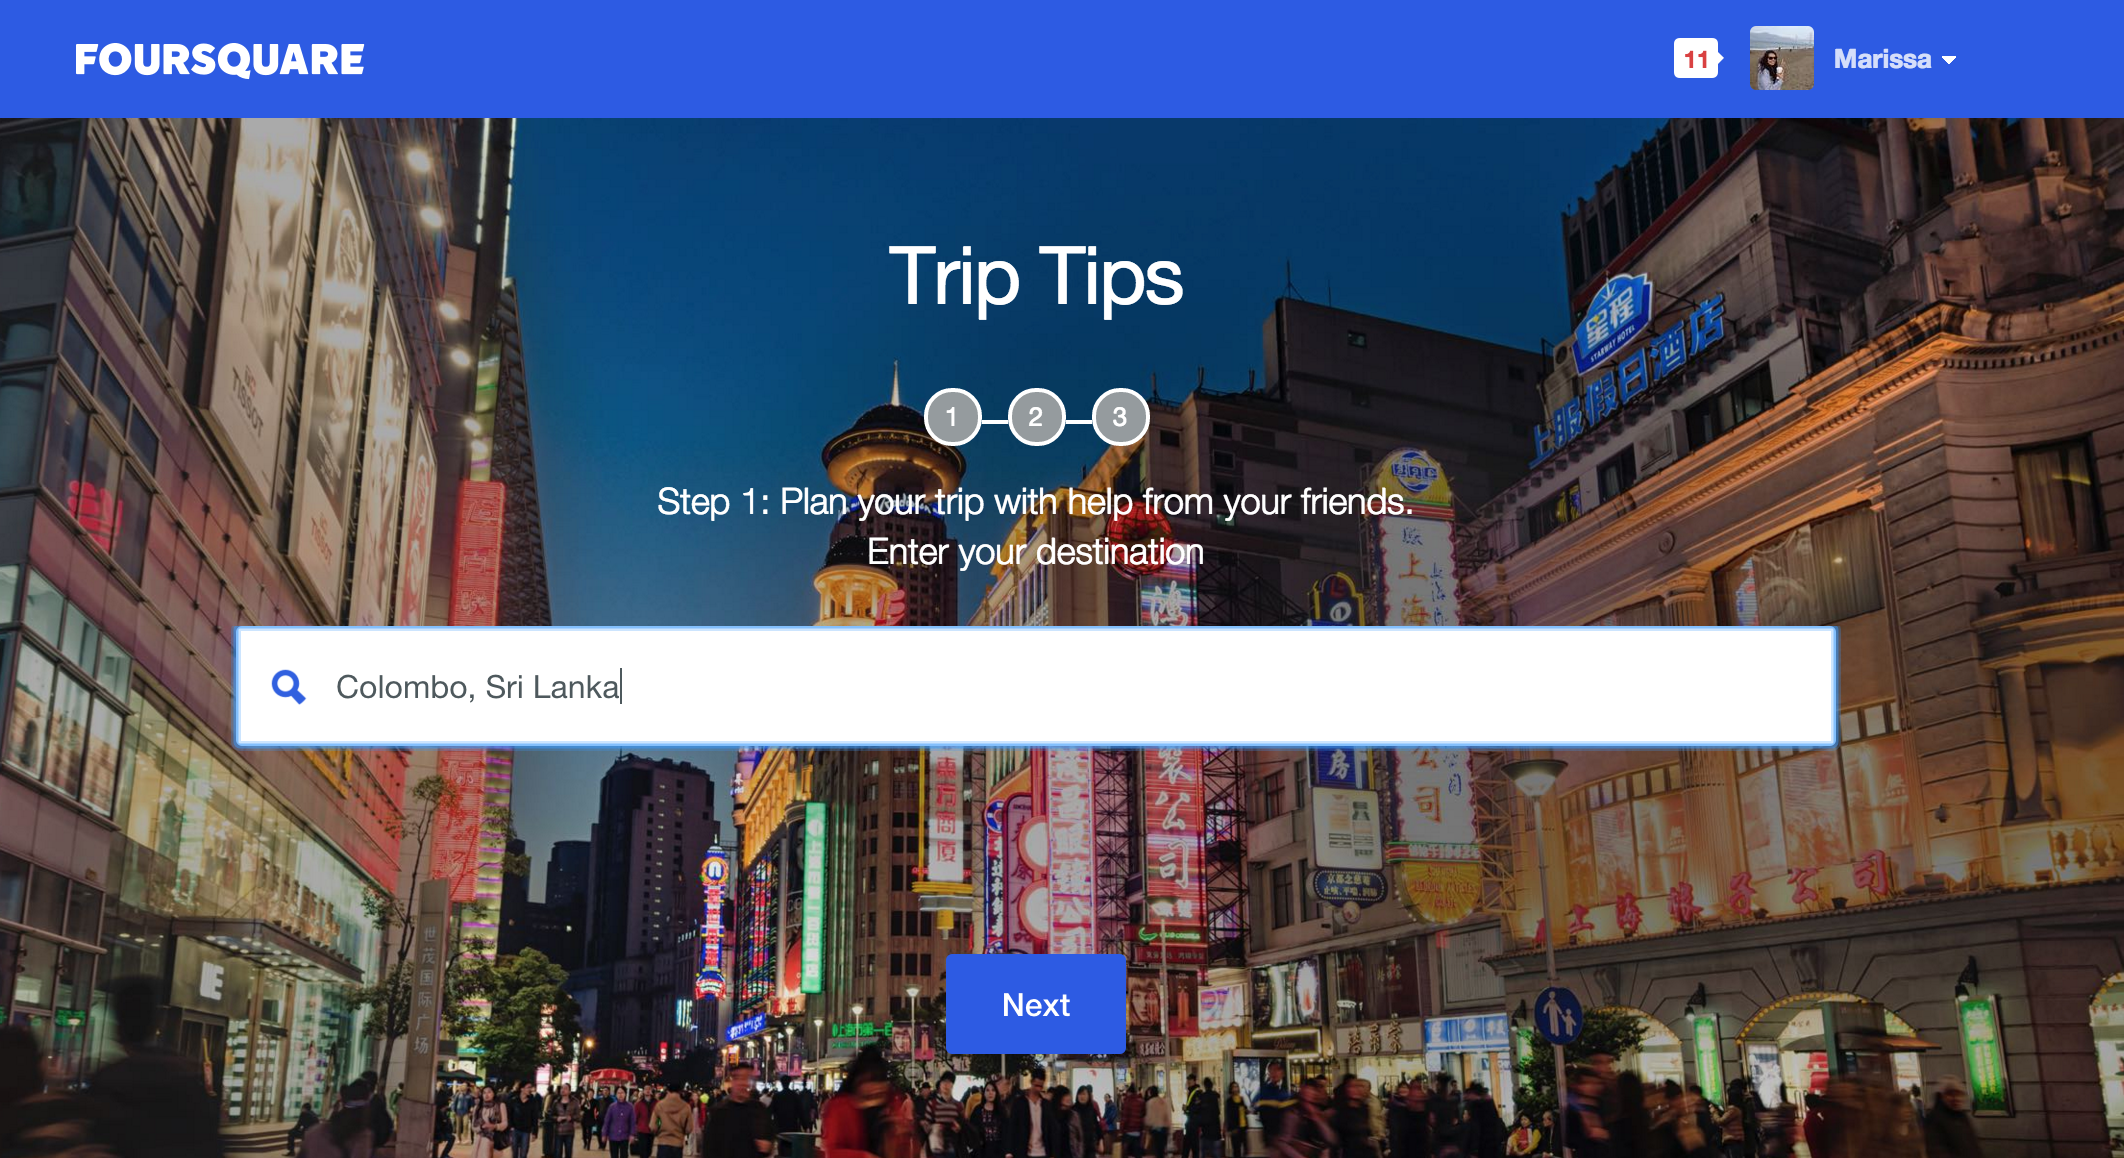 Trip Tips home page